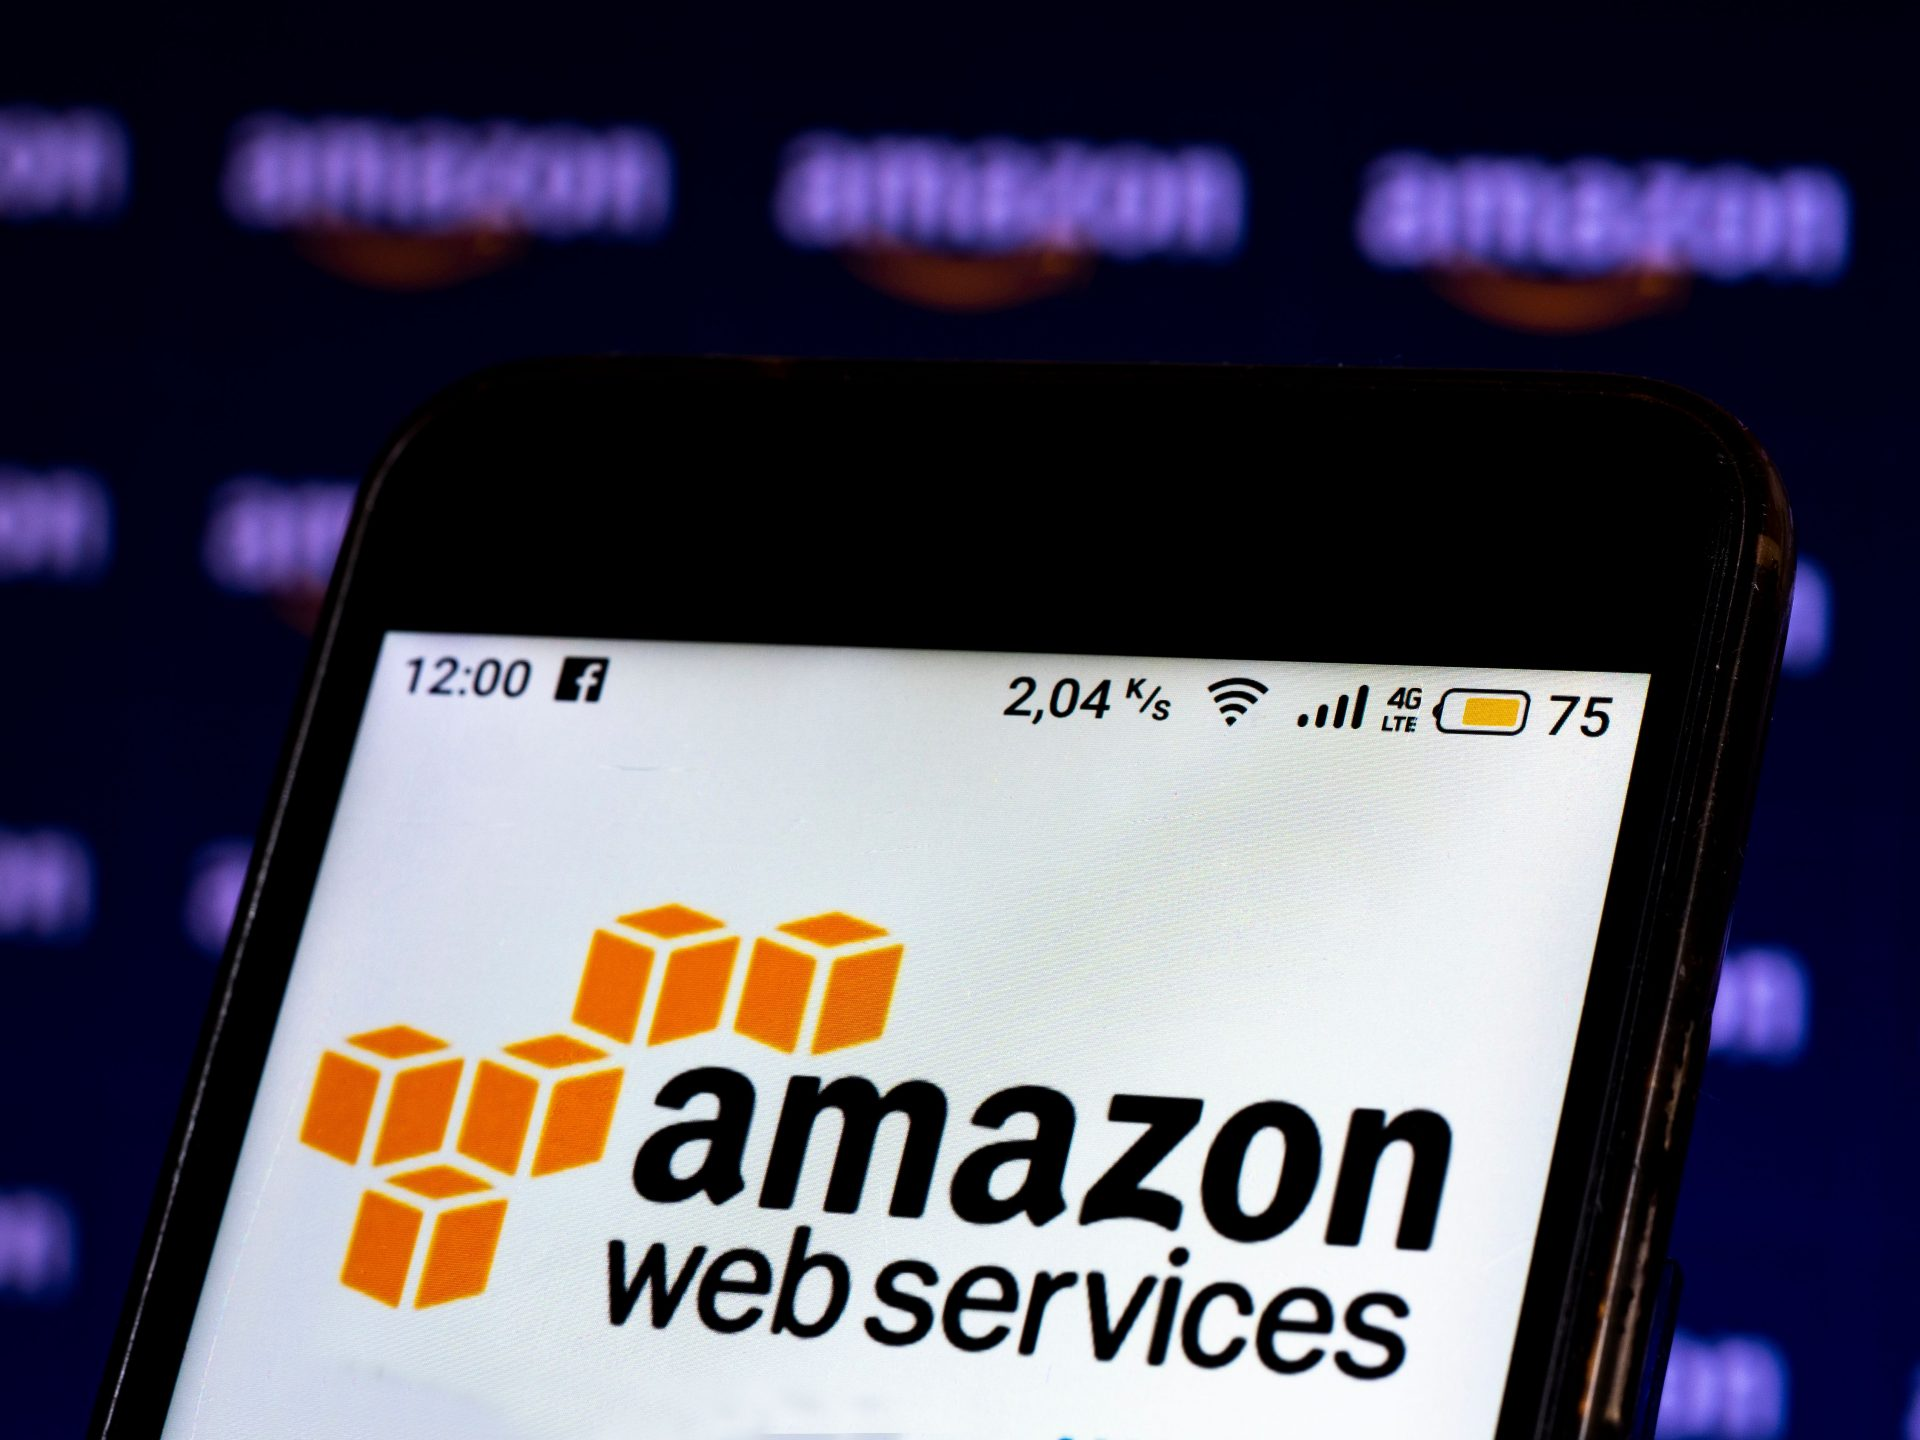 Mandatory Credit: Photo by Igor Golovniov/SOPA Images/Shutterstock (11731989b)In this photo illustration an Amazon Web Services logo seen displayed on a smartphone screen.